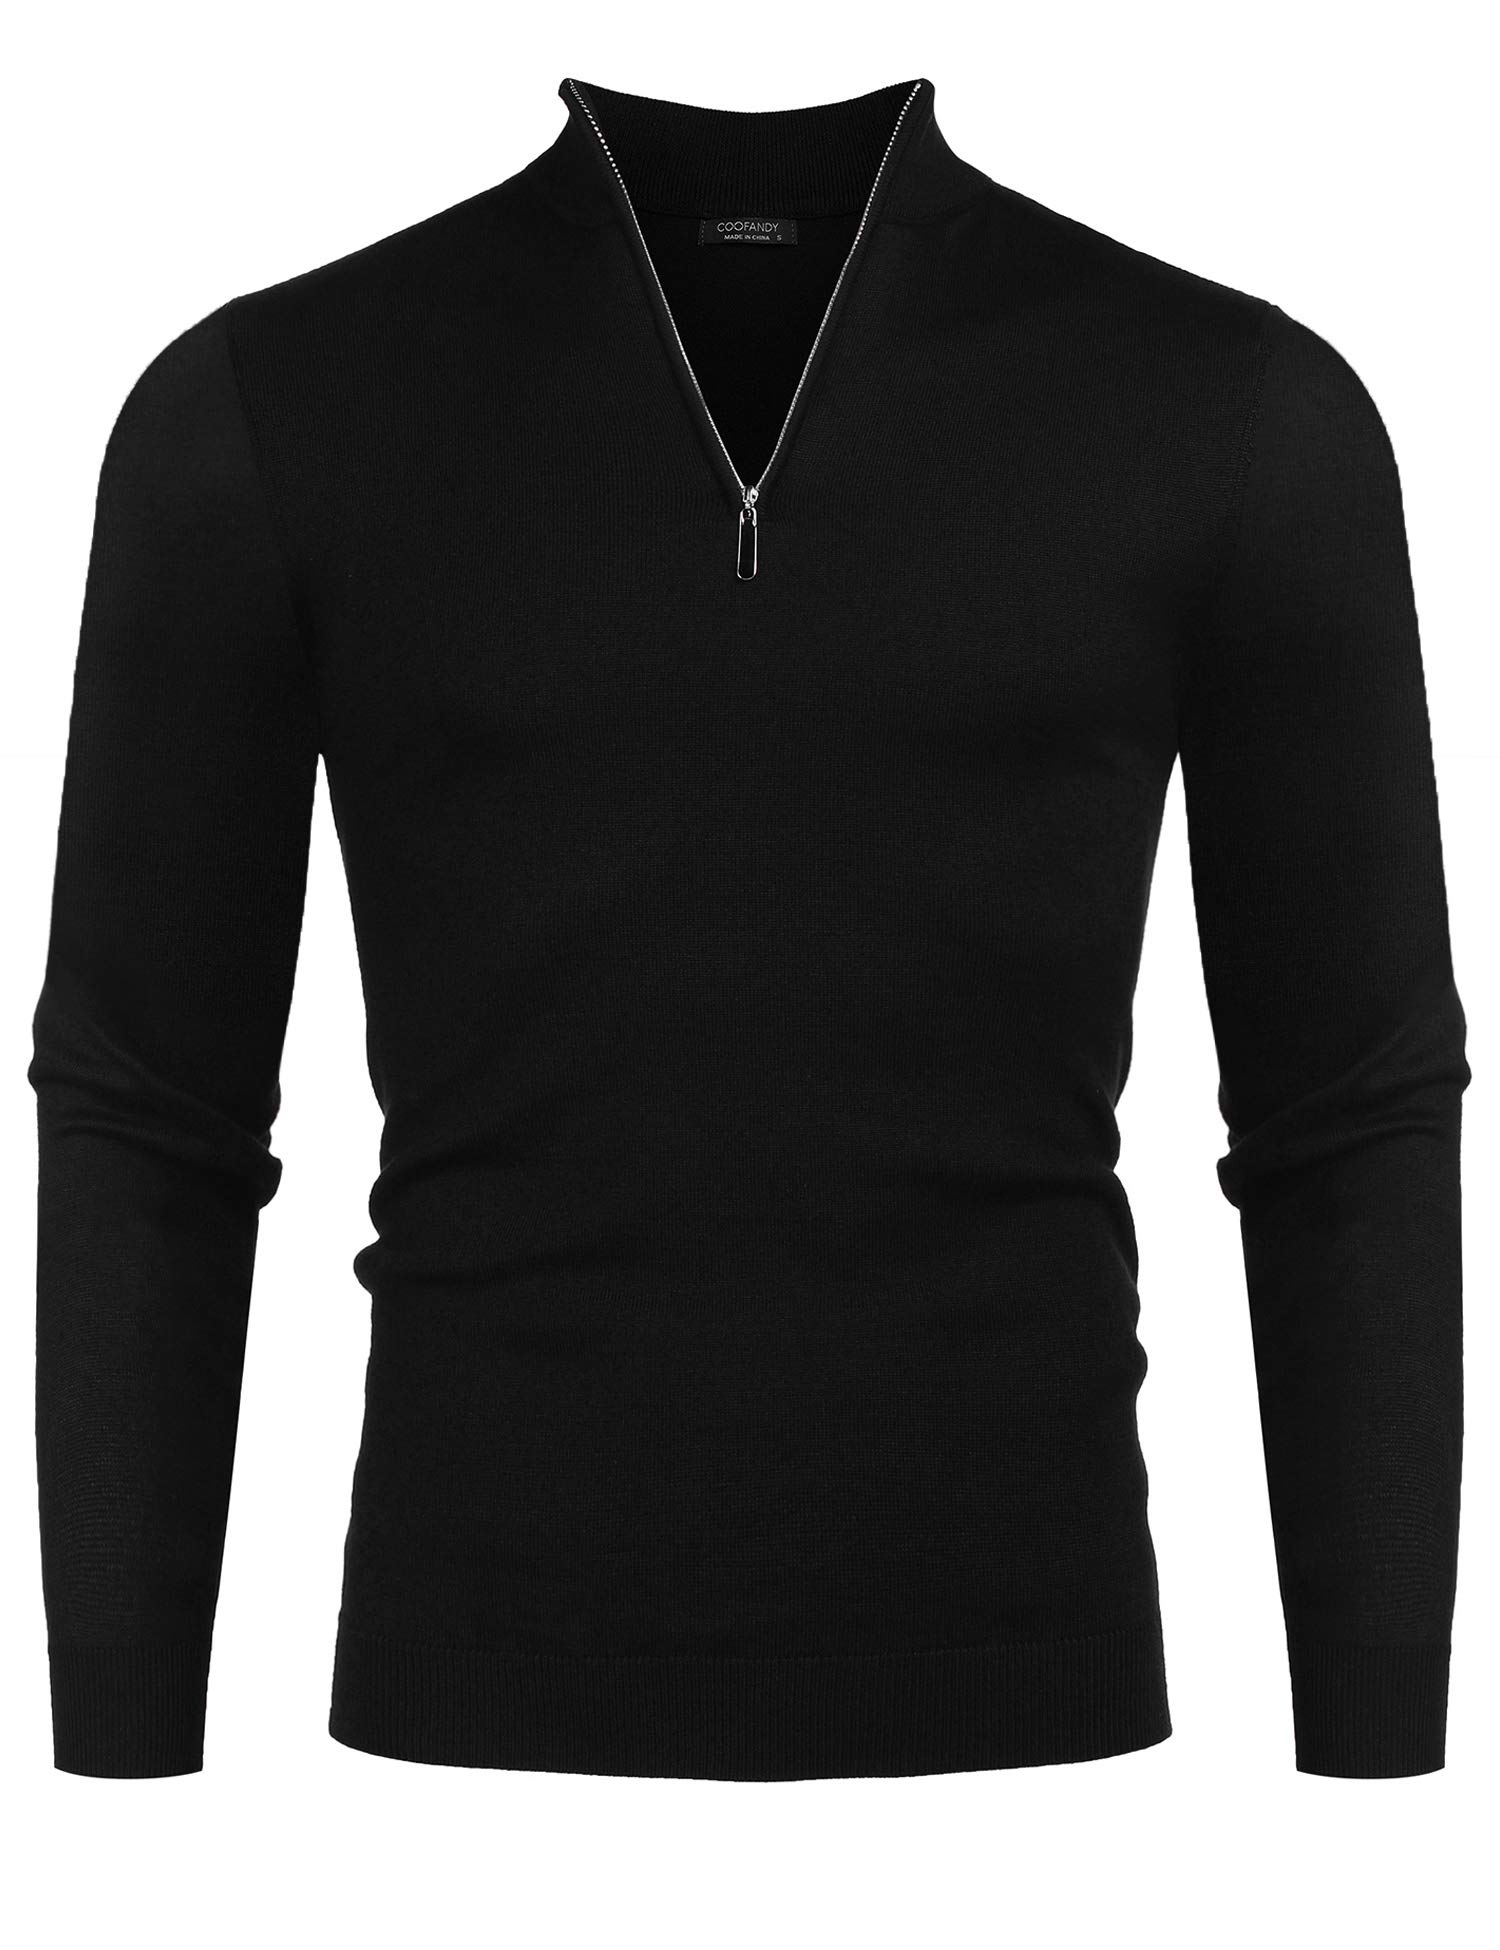 COOFANDY Mens Slim Fit Zip up Mock Neck Polo Sweater Casual Long Sleeve Pullover Sweaters with Ribbing Edge, Black, X-Large